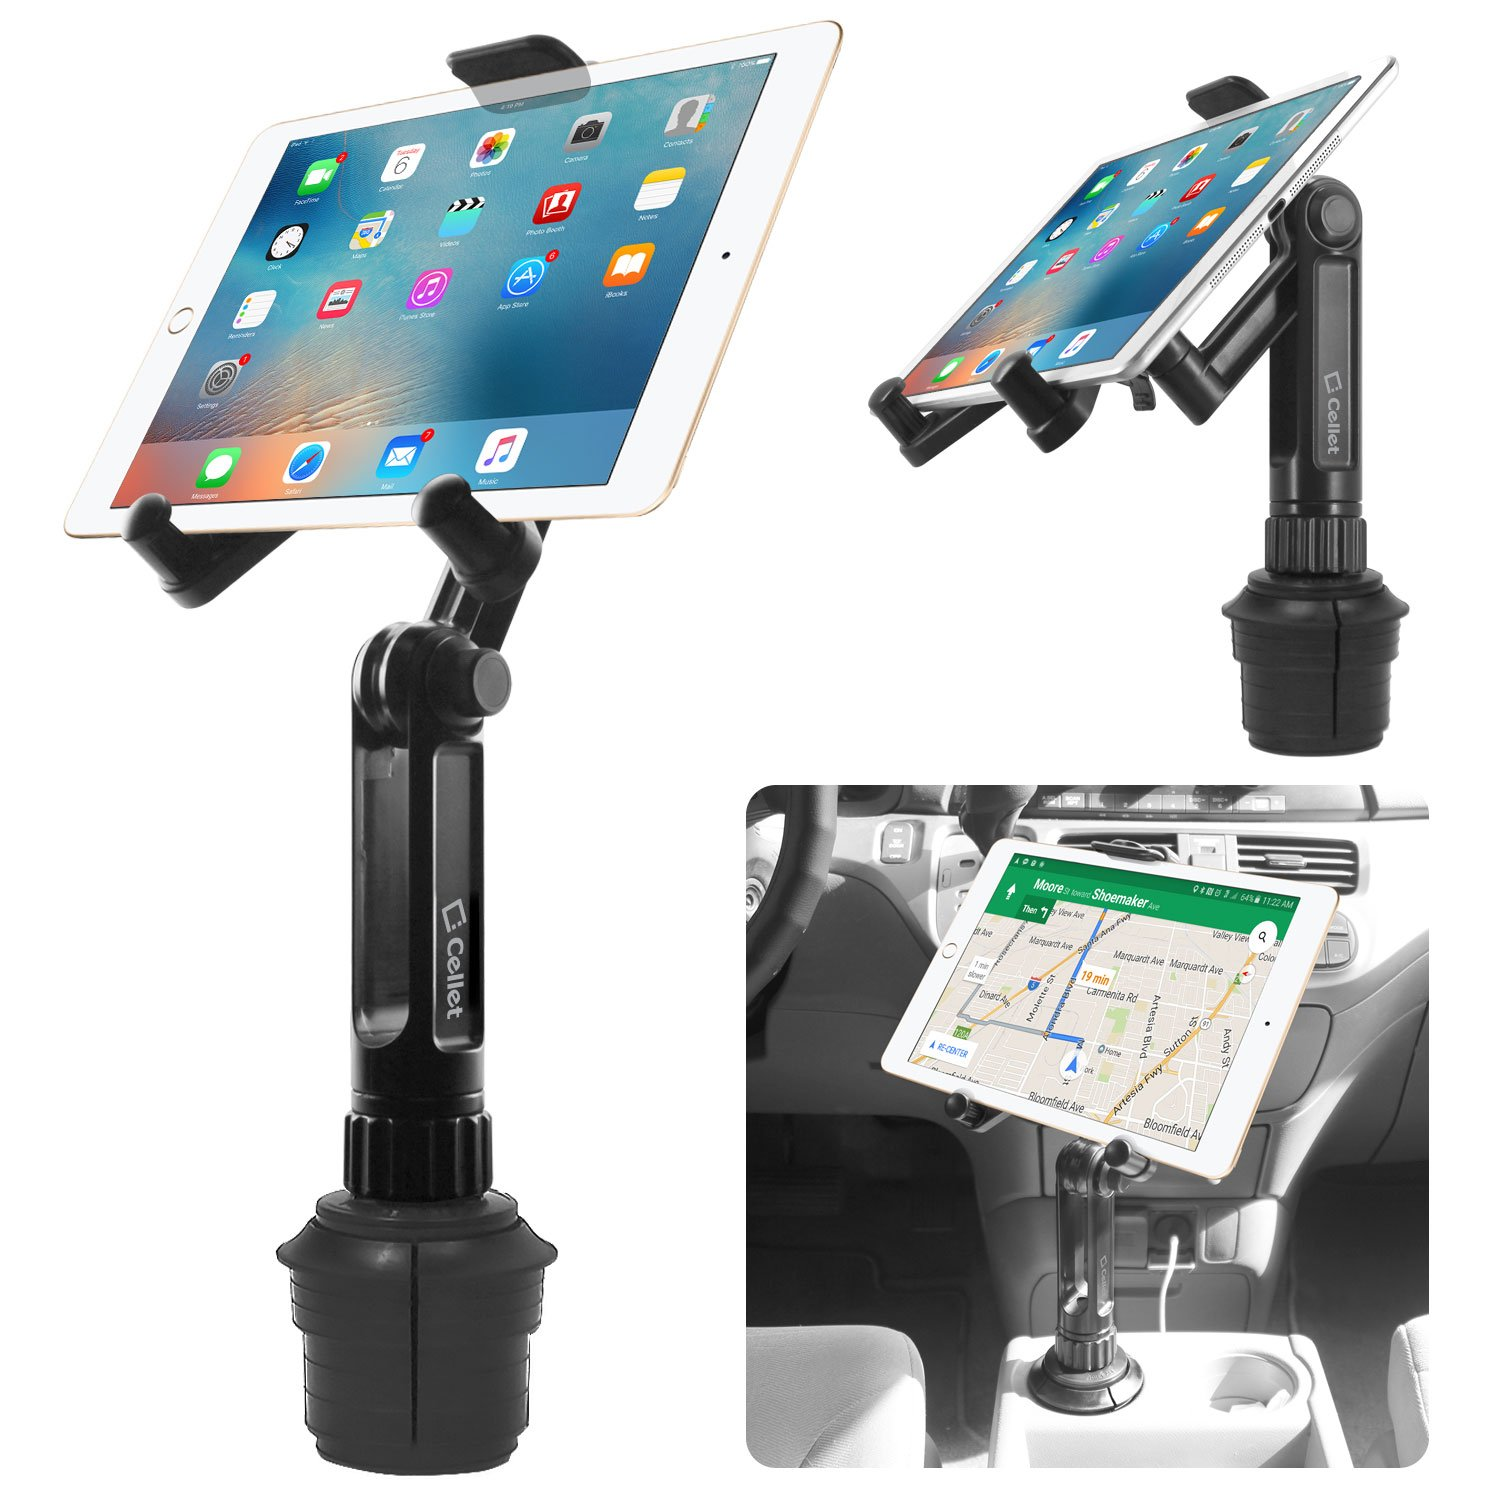 Cup Holder Tablet Mount, Tablet Car Mount Holder made by Cellet with a cup holder base for iPad Mini/Air 2 /Air/iPad 4/3/2 Samsung Galaxy Tab 4/3 and More - Holds Tablets up to 9.7 Inches in Width by Cellet